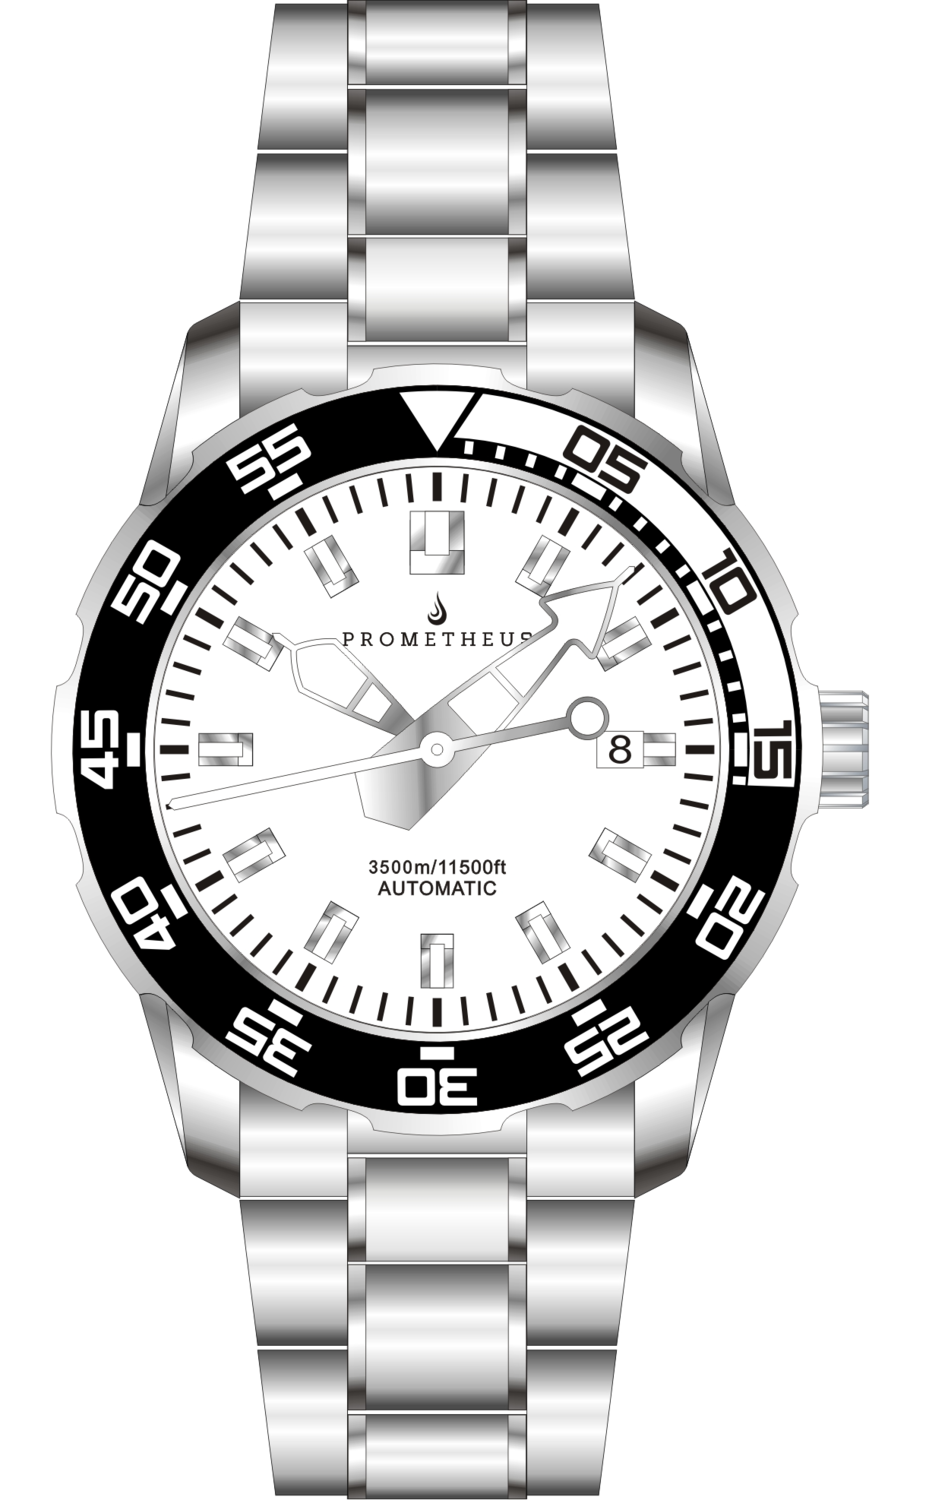 Prometheus Poseidon Stainless Steel White Bezel Lumed White Dial Modern Diver Hands 3500m Miyota 9015 Automatic Diver Watch